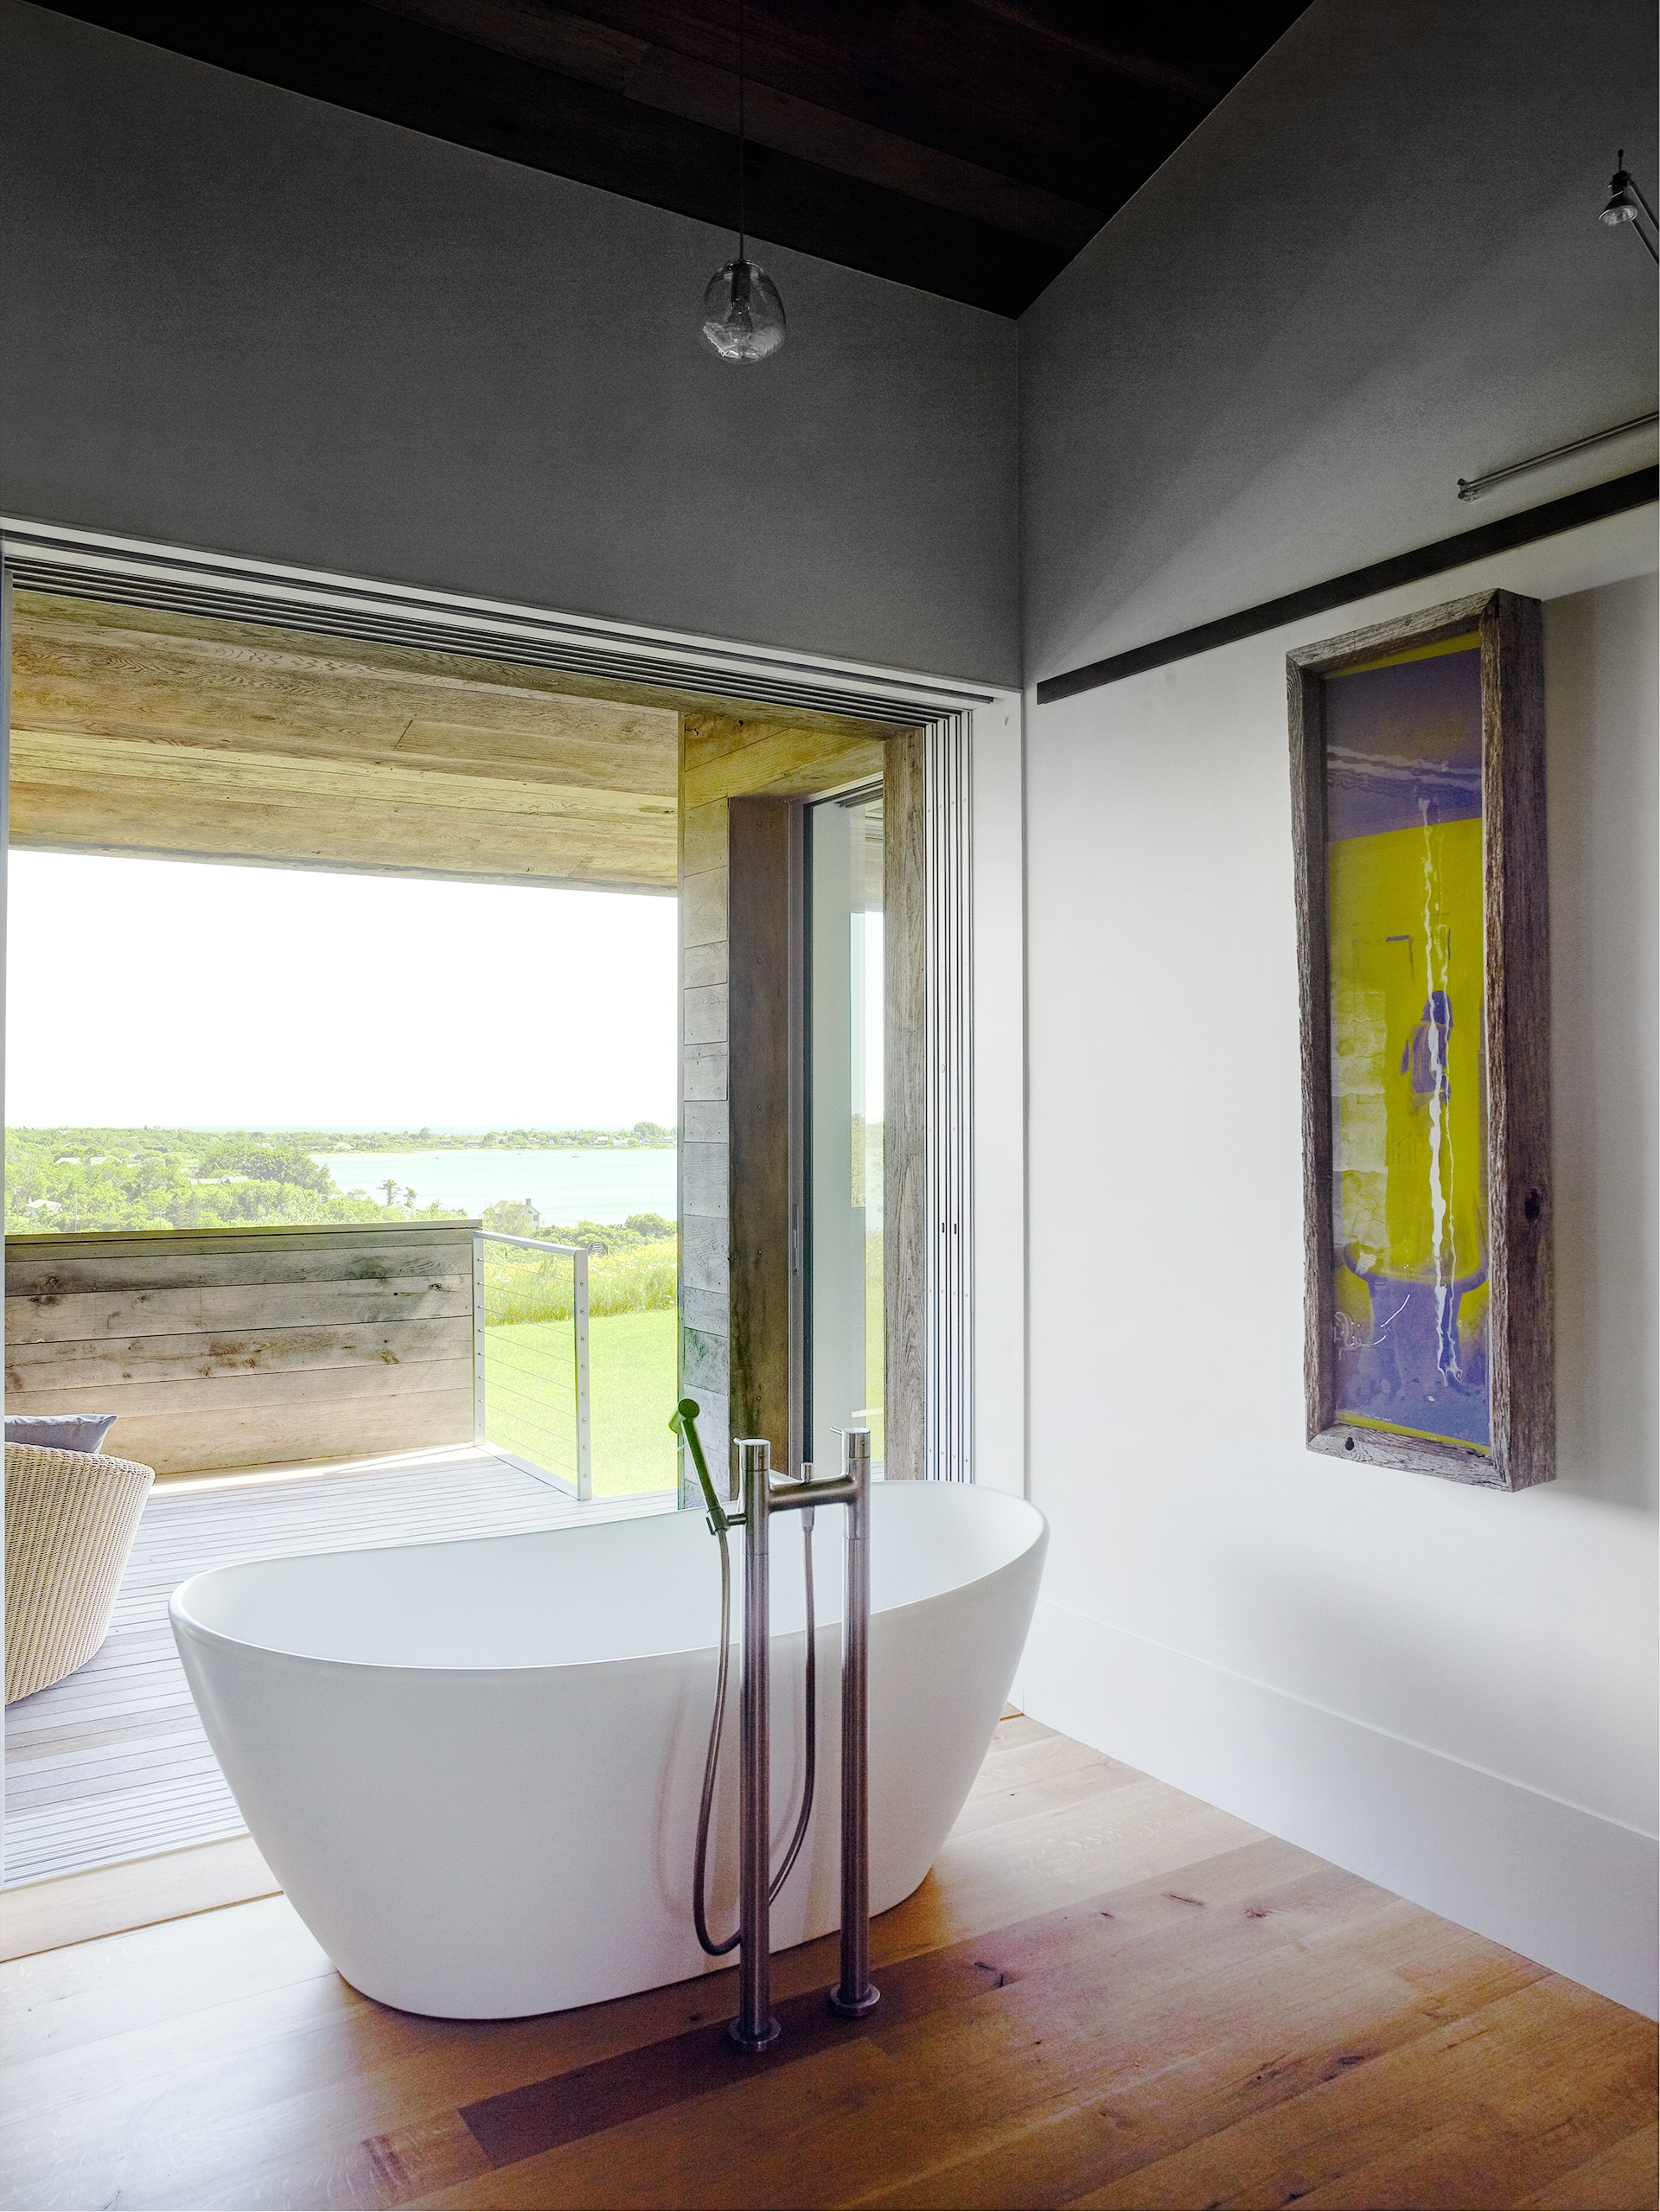 12 beautiful bathtubs homes 12 beautiful bathtubs perfect for relaxing homes and hues